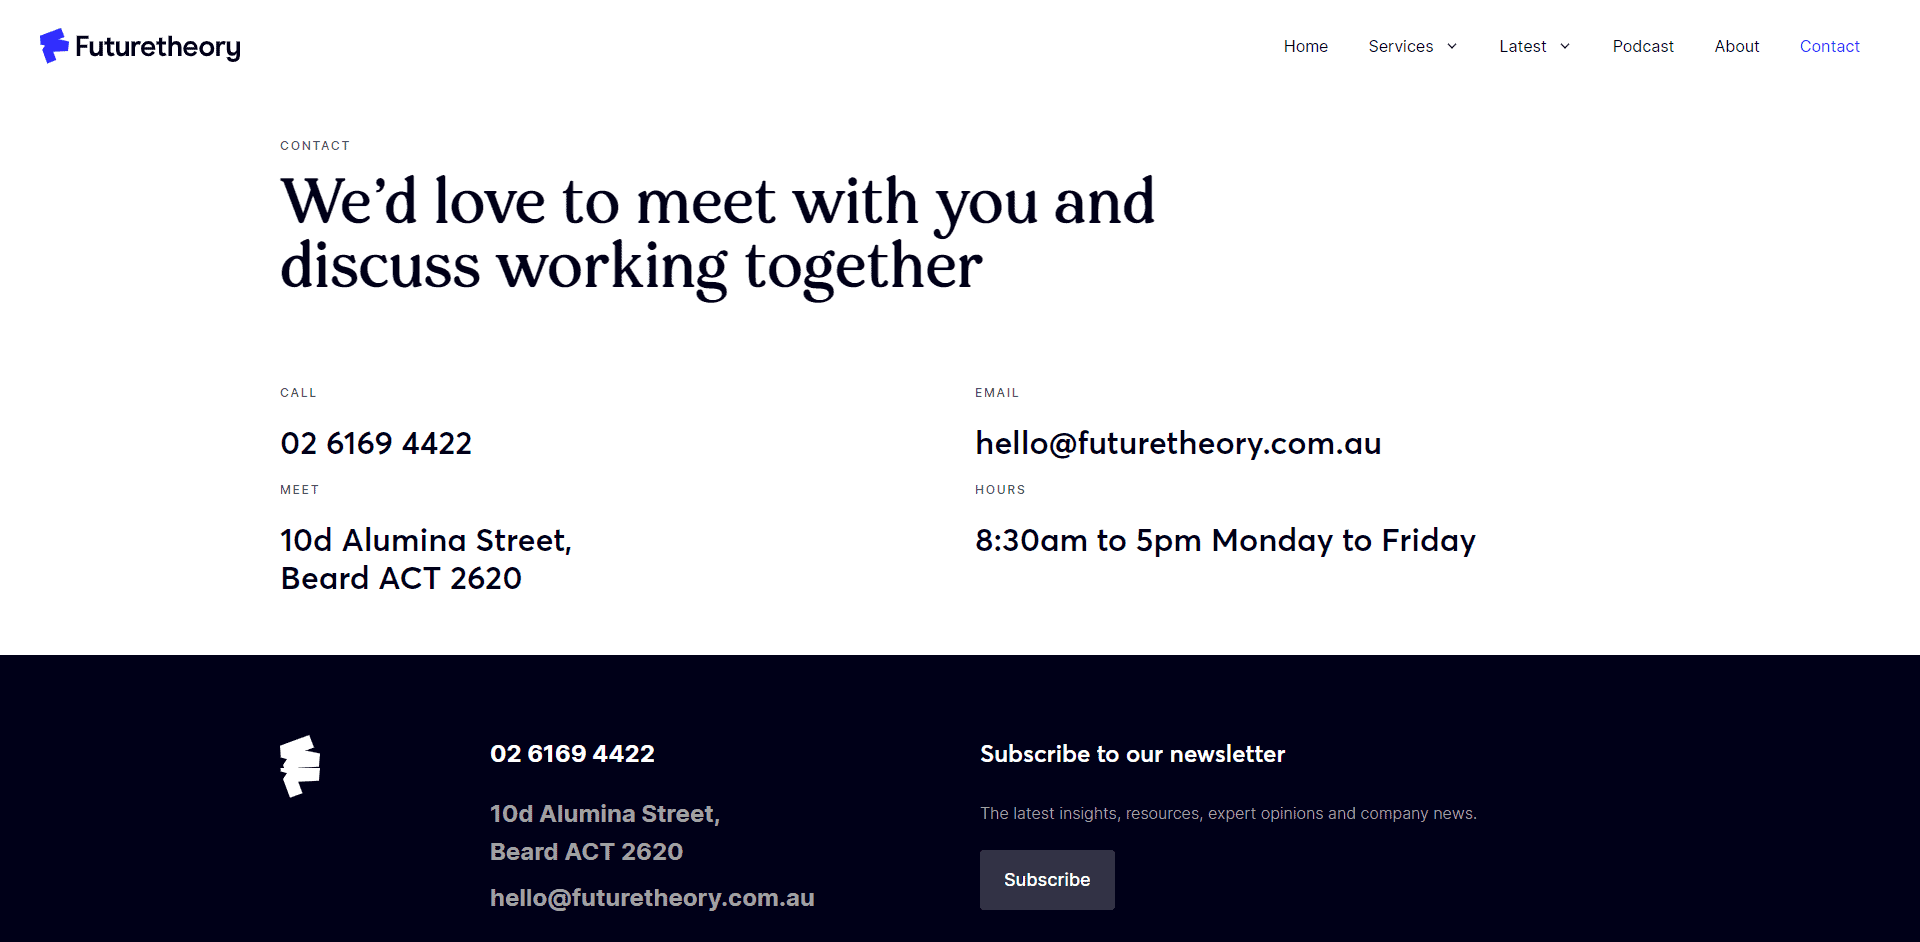 The futuretheory contact page